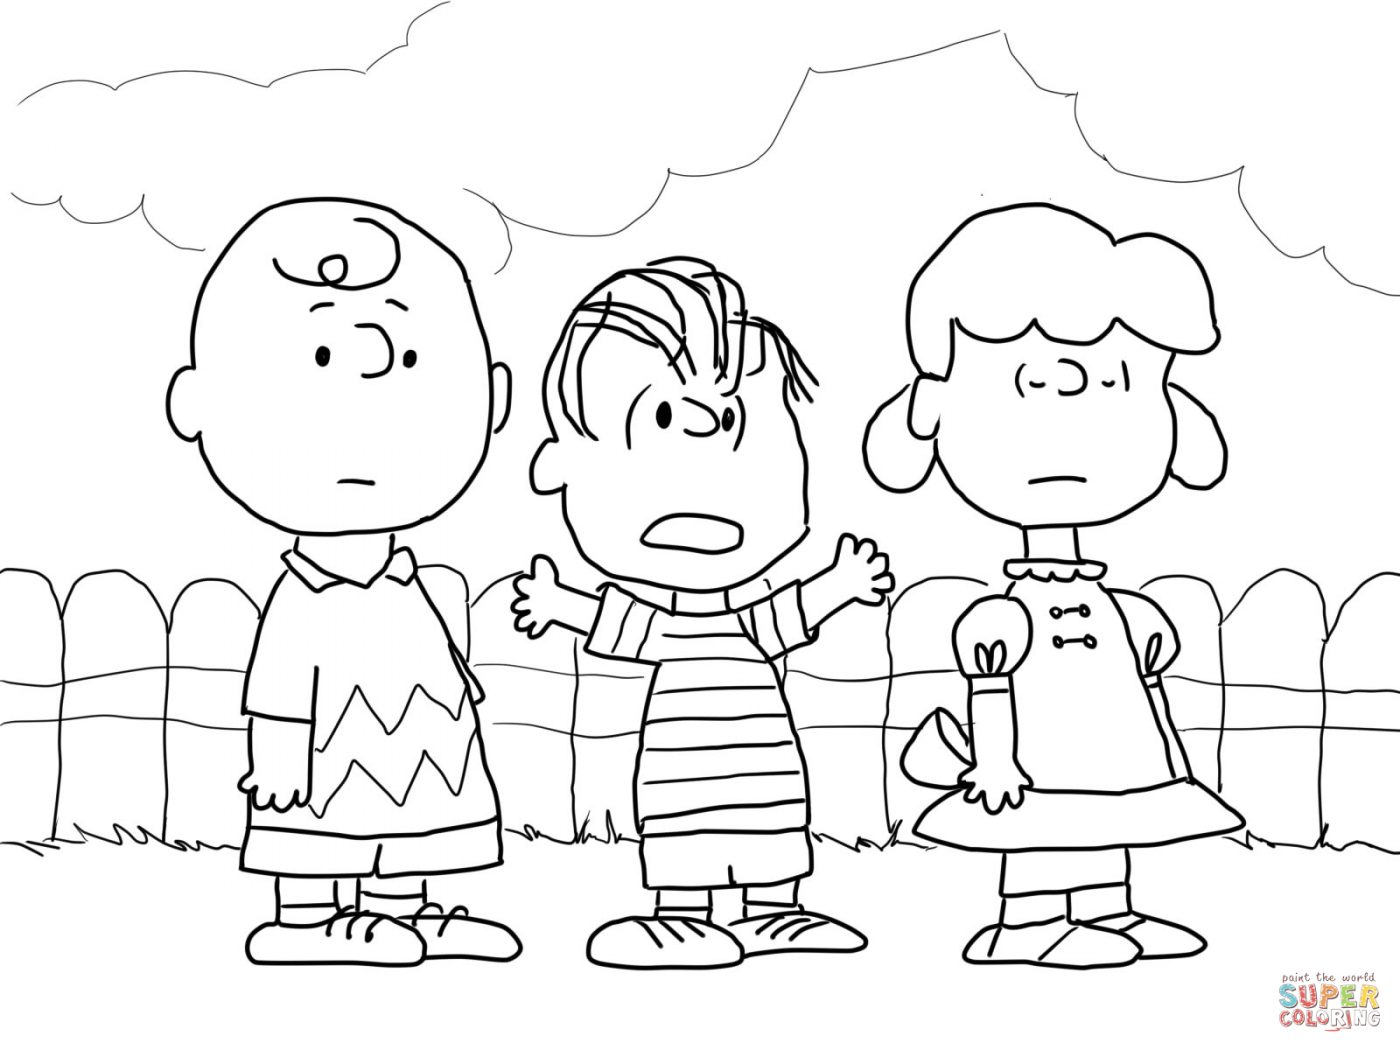 1400x1050 Charlie Brown Christmas Coloring Pages Pictures High Resolution